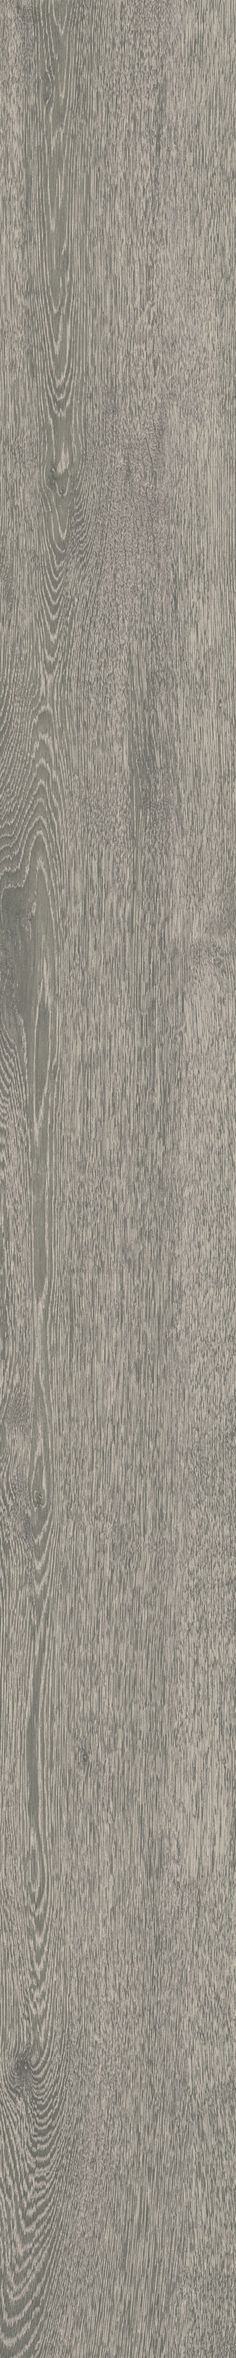 Porcelain Tile: Cenere maximum: Natura maximum